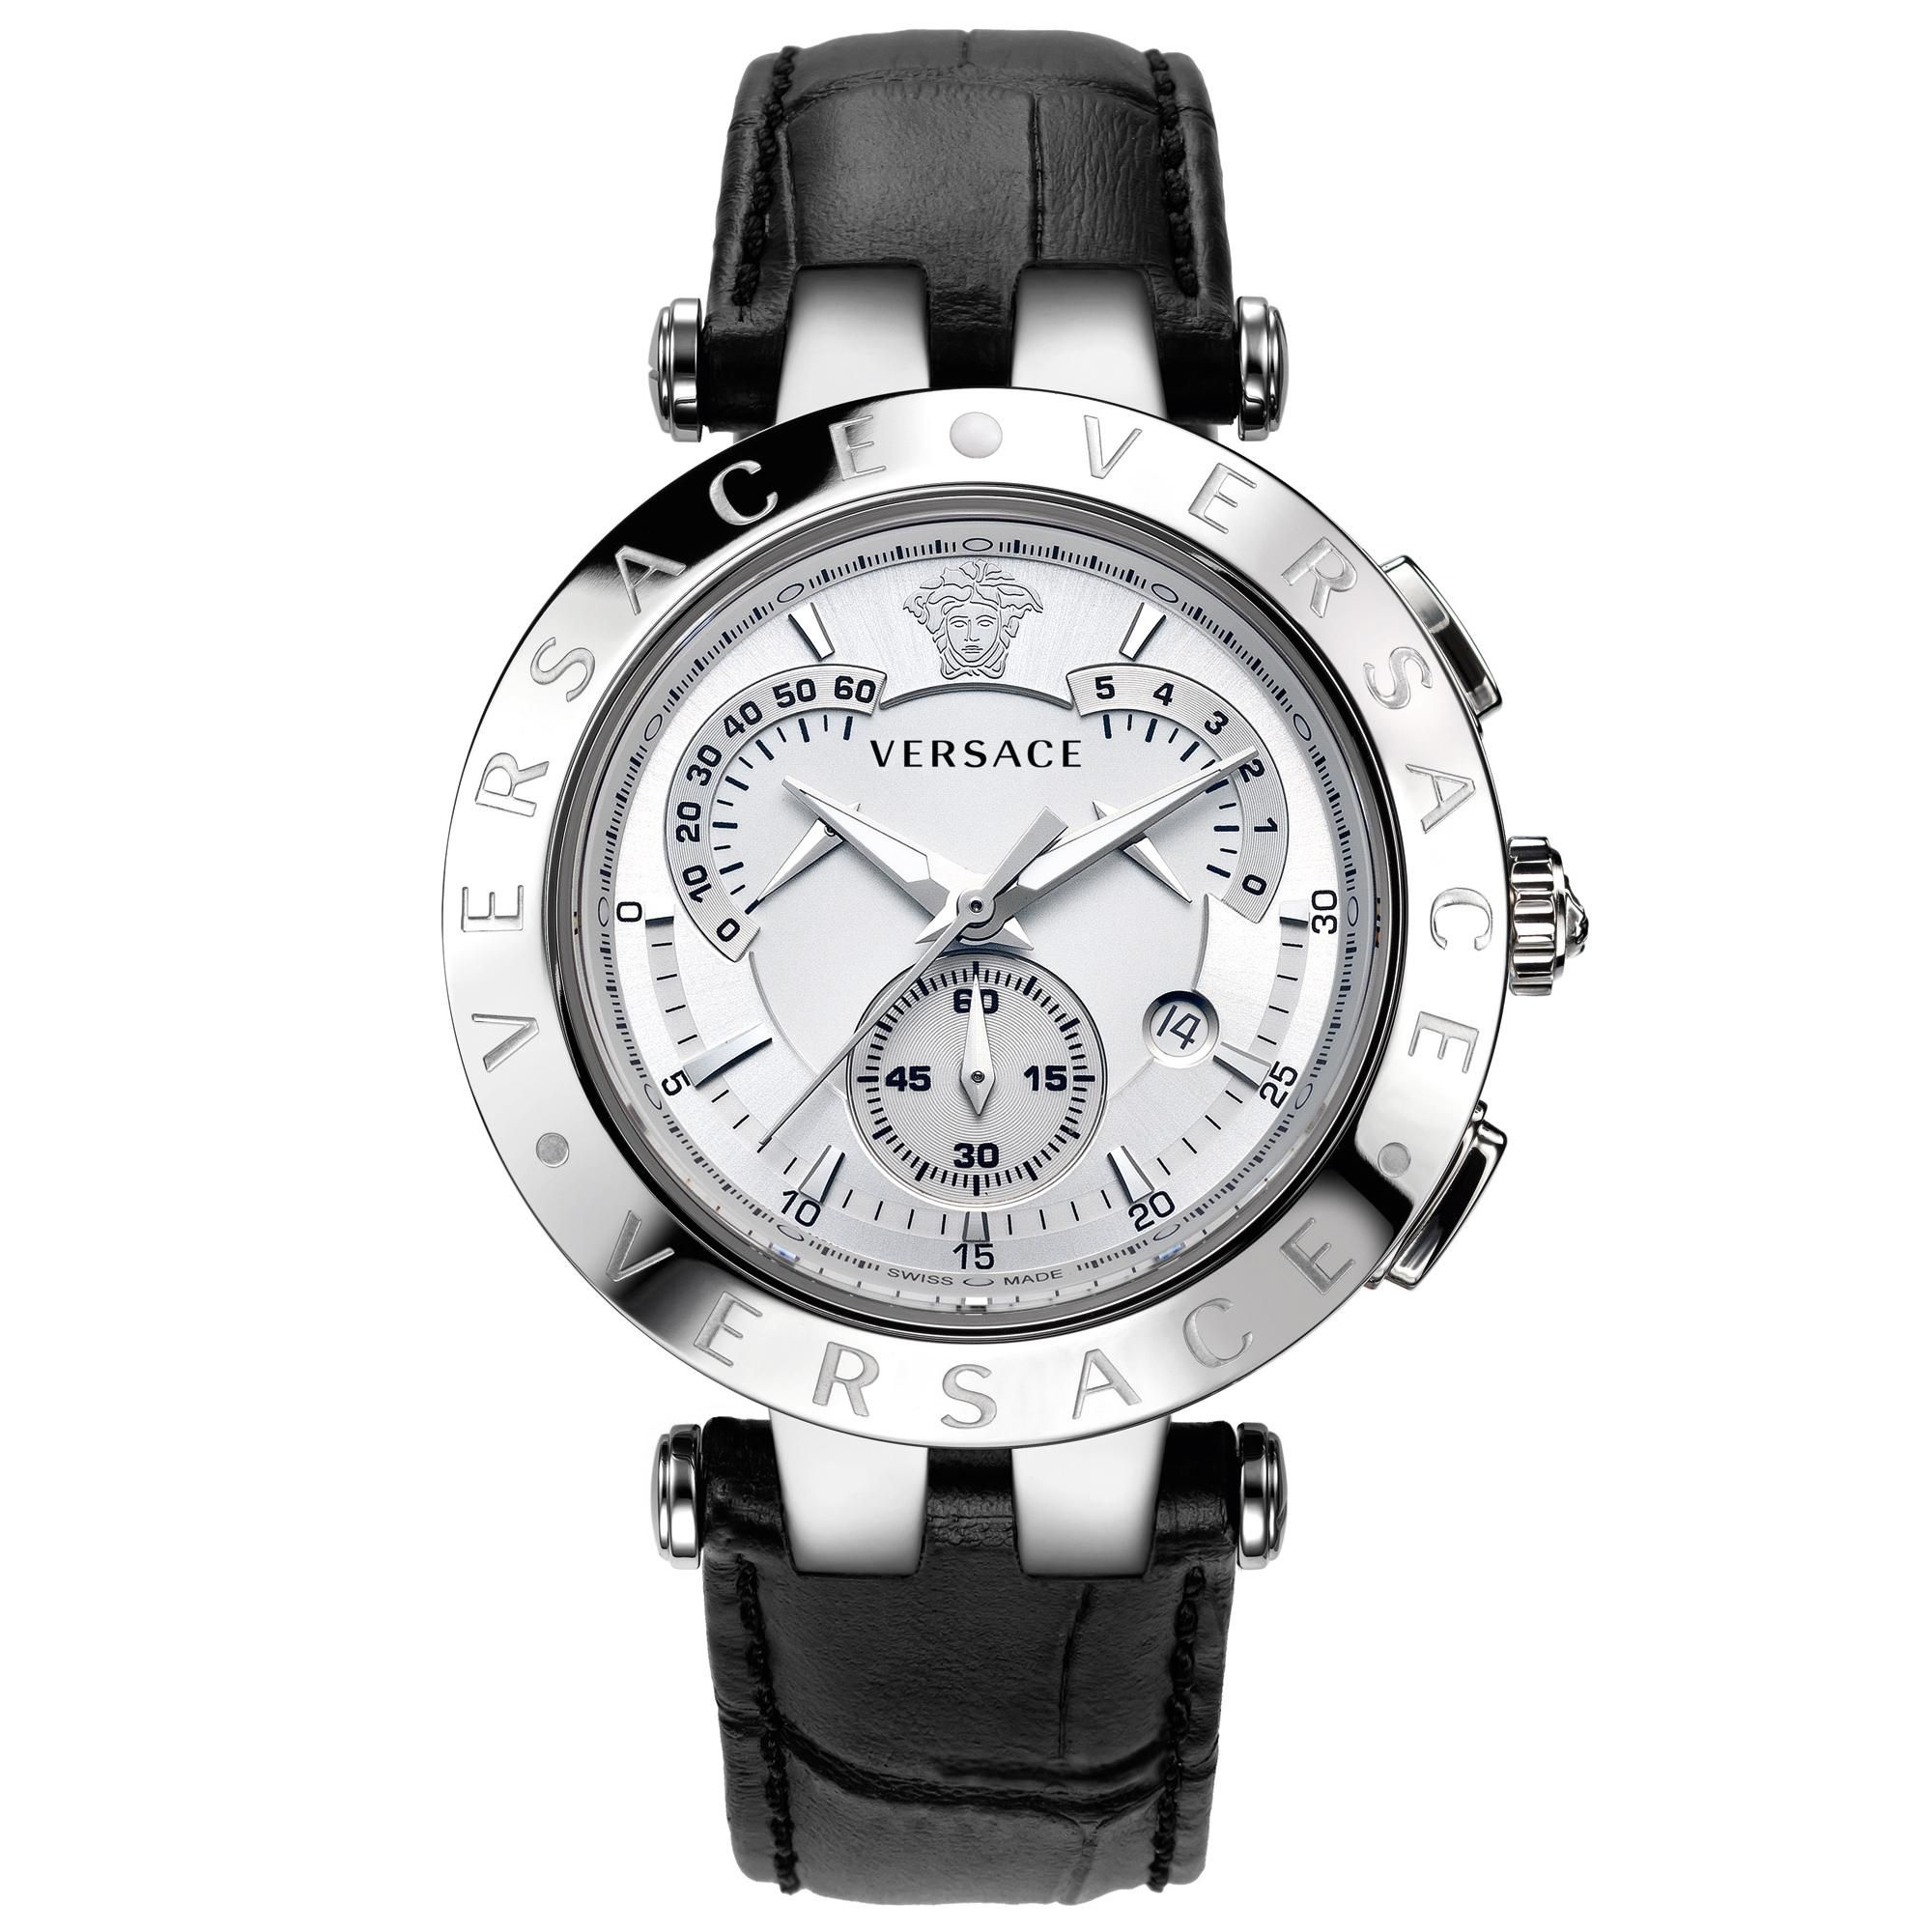 versace v race chrono mens watch steel silver dial black strap versace v race chrono mens watch steel silver dial black strap 23c99d002 s009